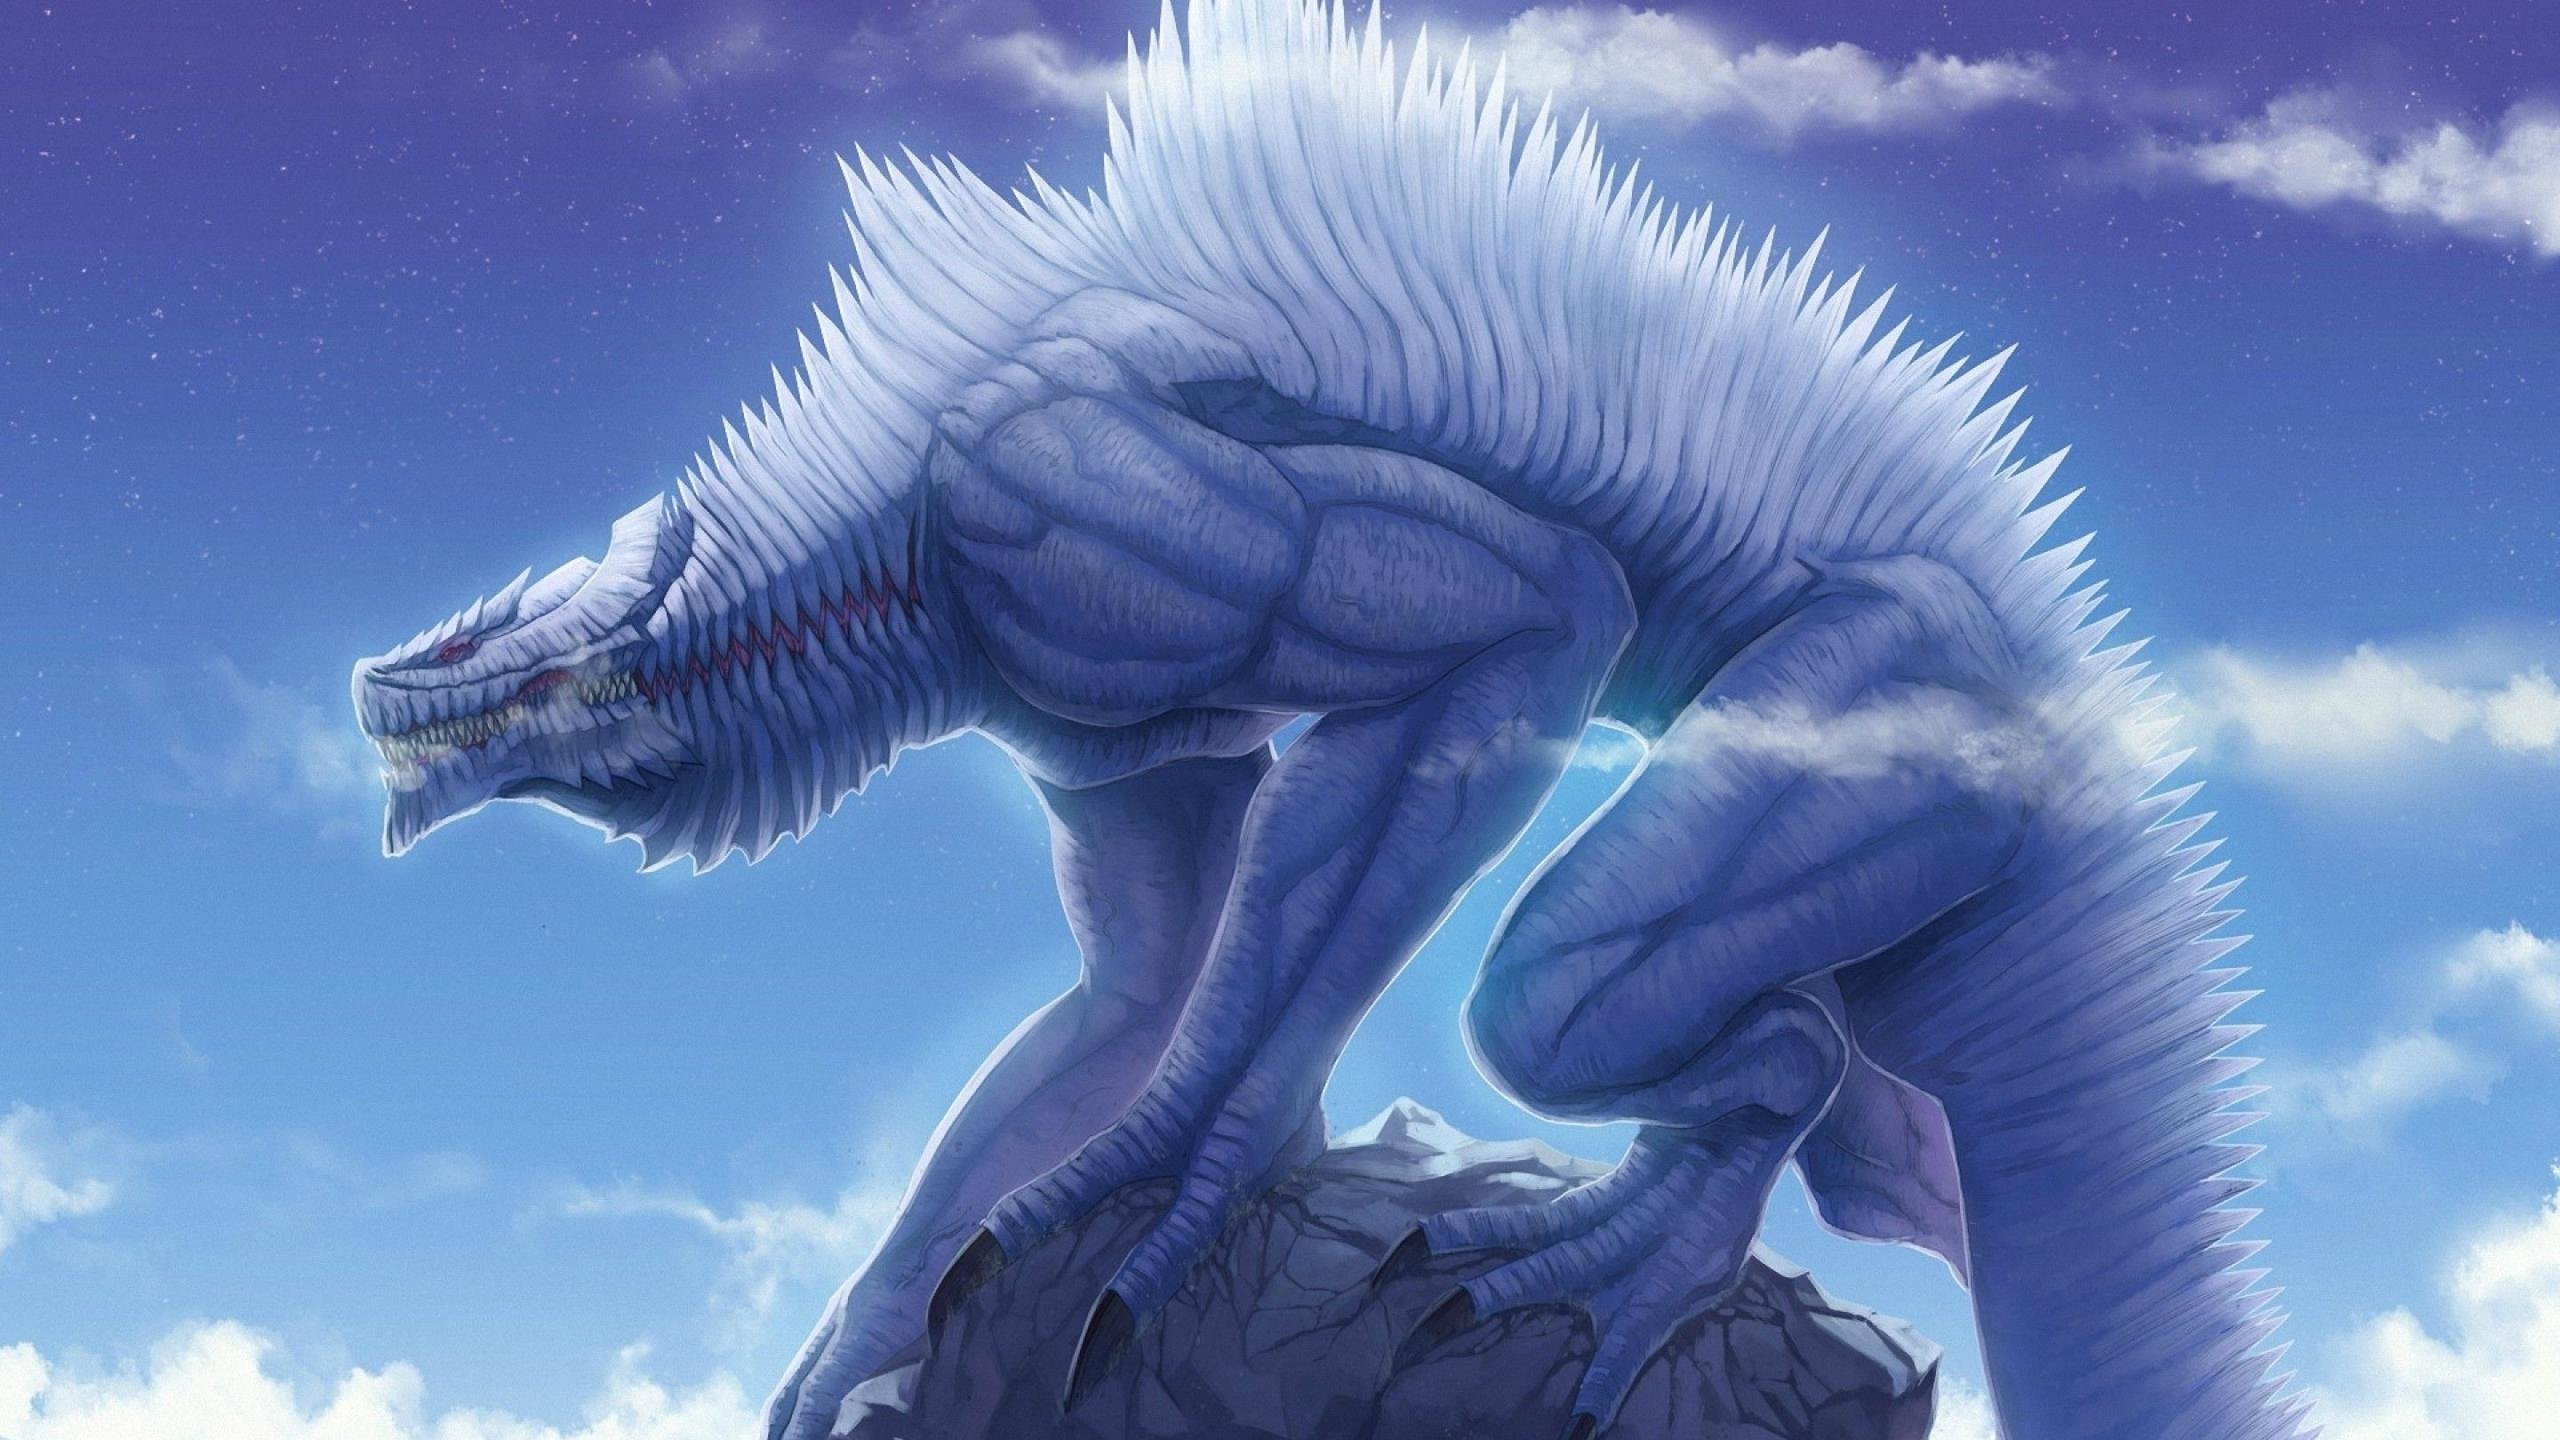 Best Mythical Creatures Background ID229834 For High Resolution Hd 2560x1440 PC